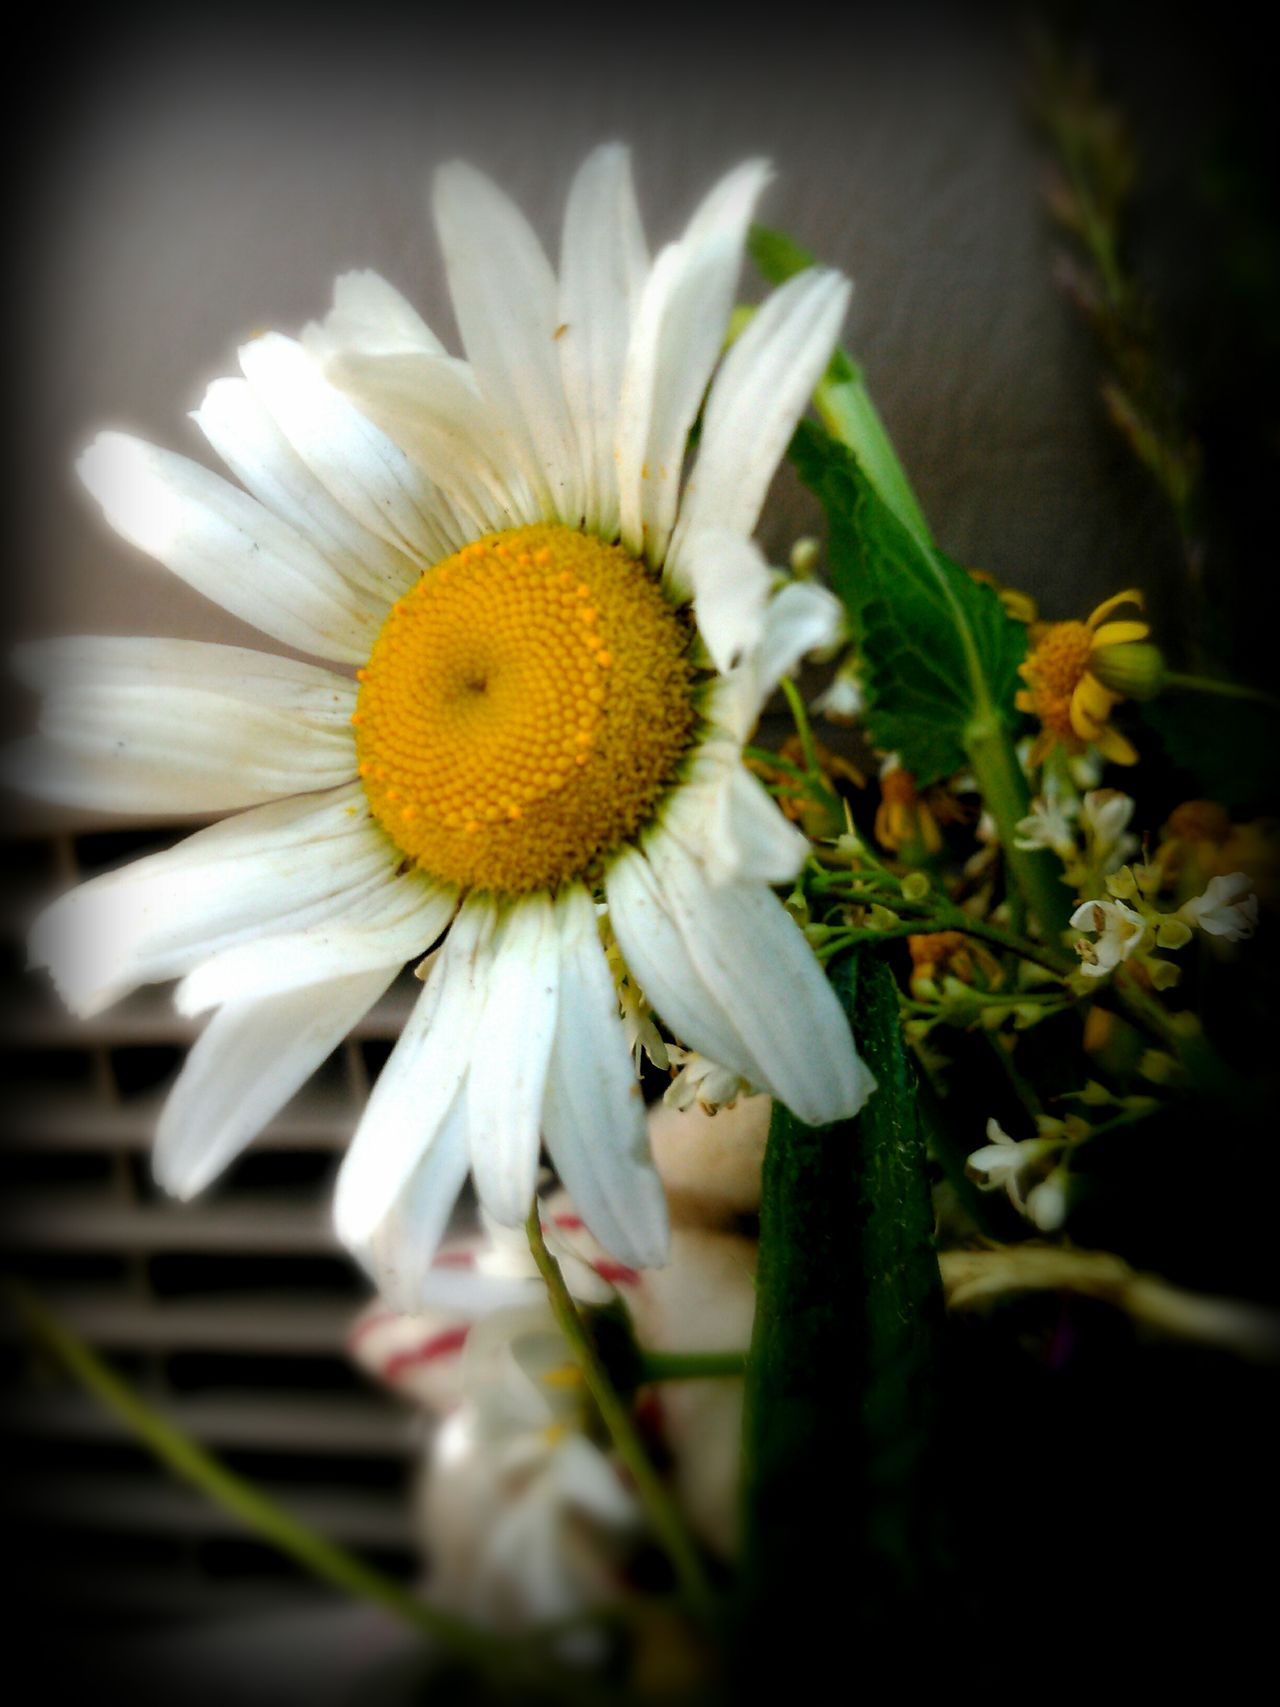 Daisy Daisy Flower Daisy Flower Head Daisy Close Up Flower Fragility Petal Flower Head Freshness Nature Beauty In Nature Close-up No People Pollen Plant Growth Day Yellow Beauty Natural Light Freelance Life EyeEm Gallery EyeEm Best Shots EyeEm Nature Lover Green Color